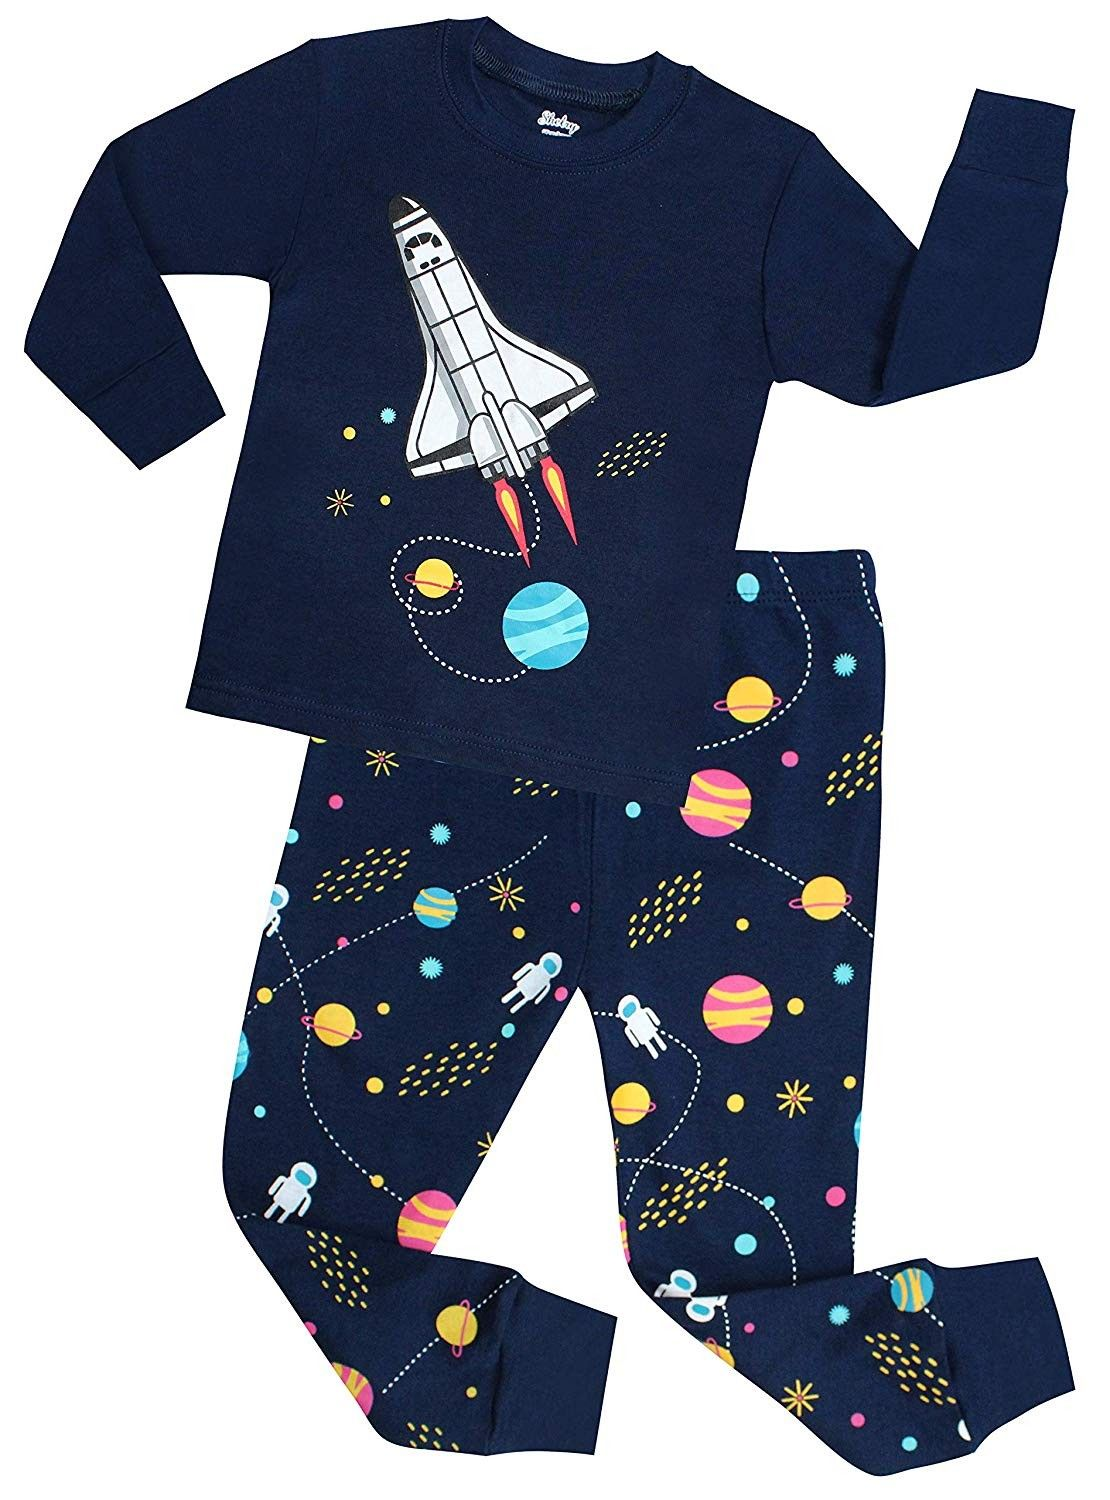 Children Pajamas Boys Pjs Cotton Toddler Kids Sleepwear Set 100/% Cotton